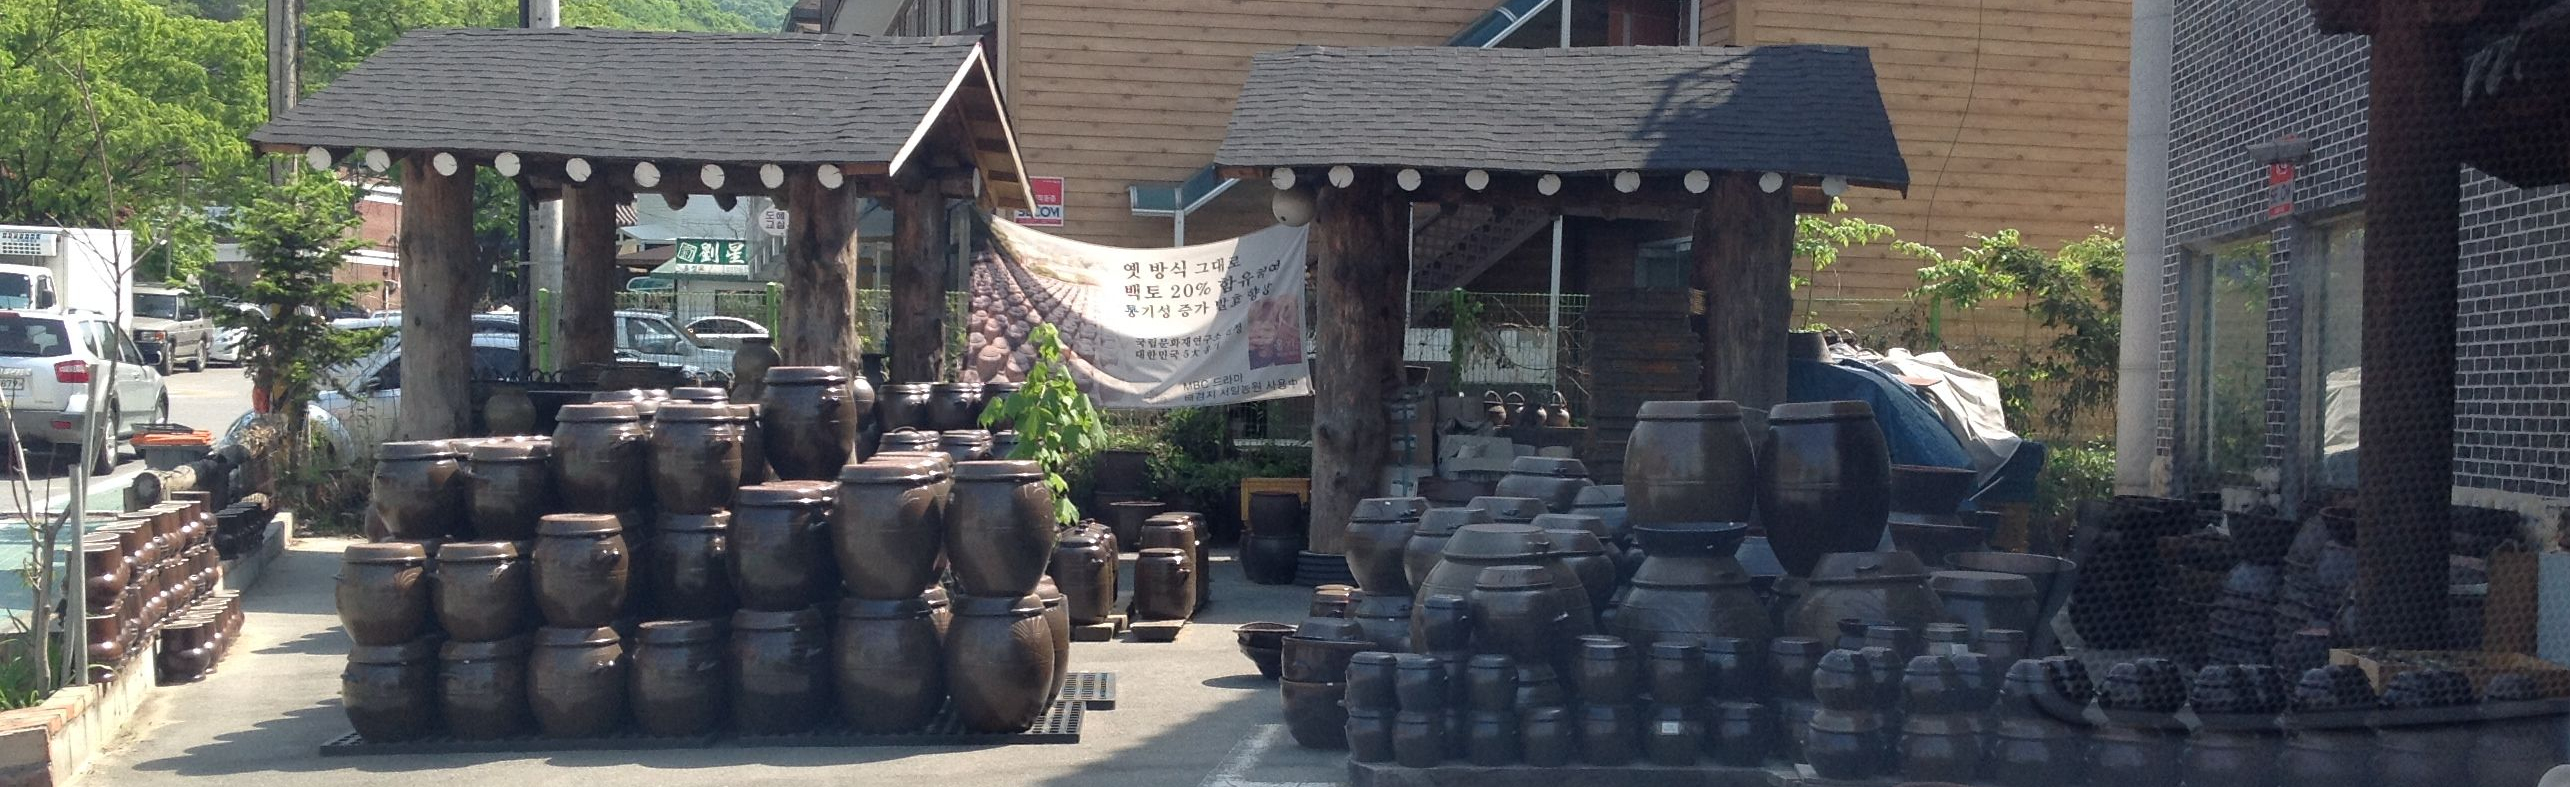 2014-05-10 Icheon Ceramics Village 021 banner